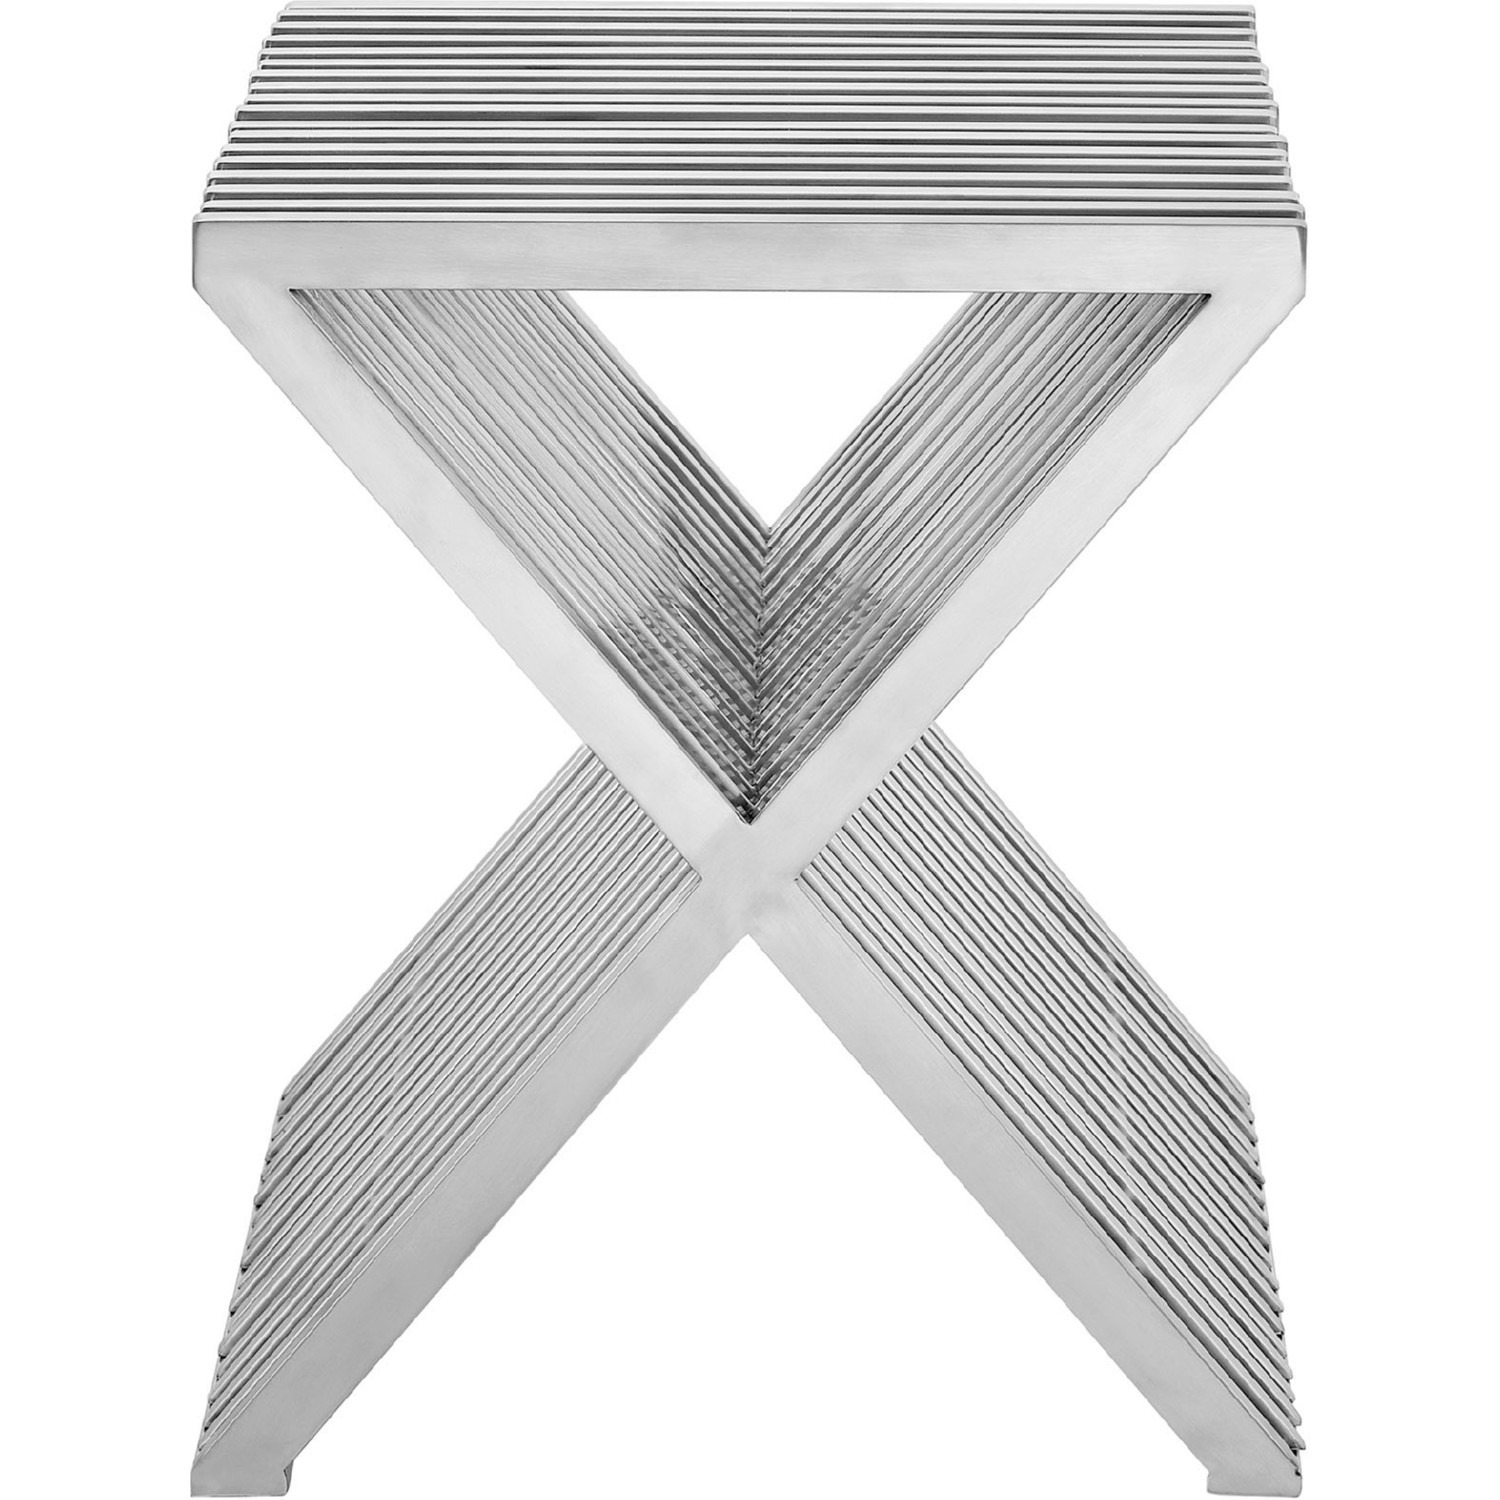 Modern Side Table In Silver Stainless Steel Finish - image-0